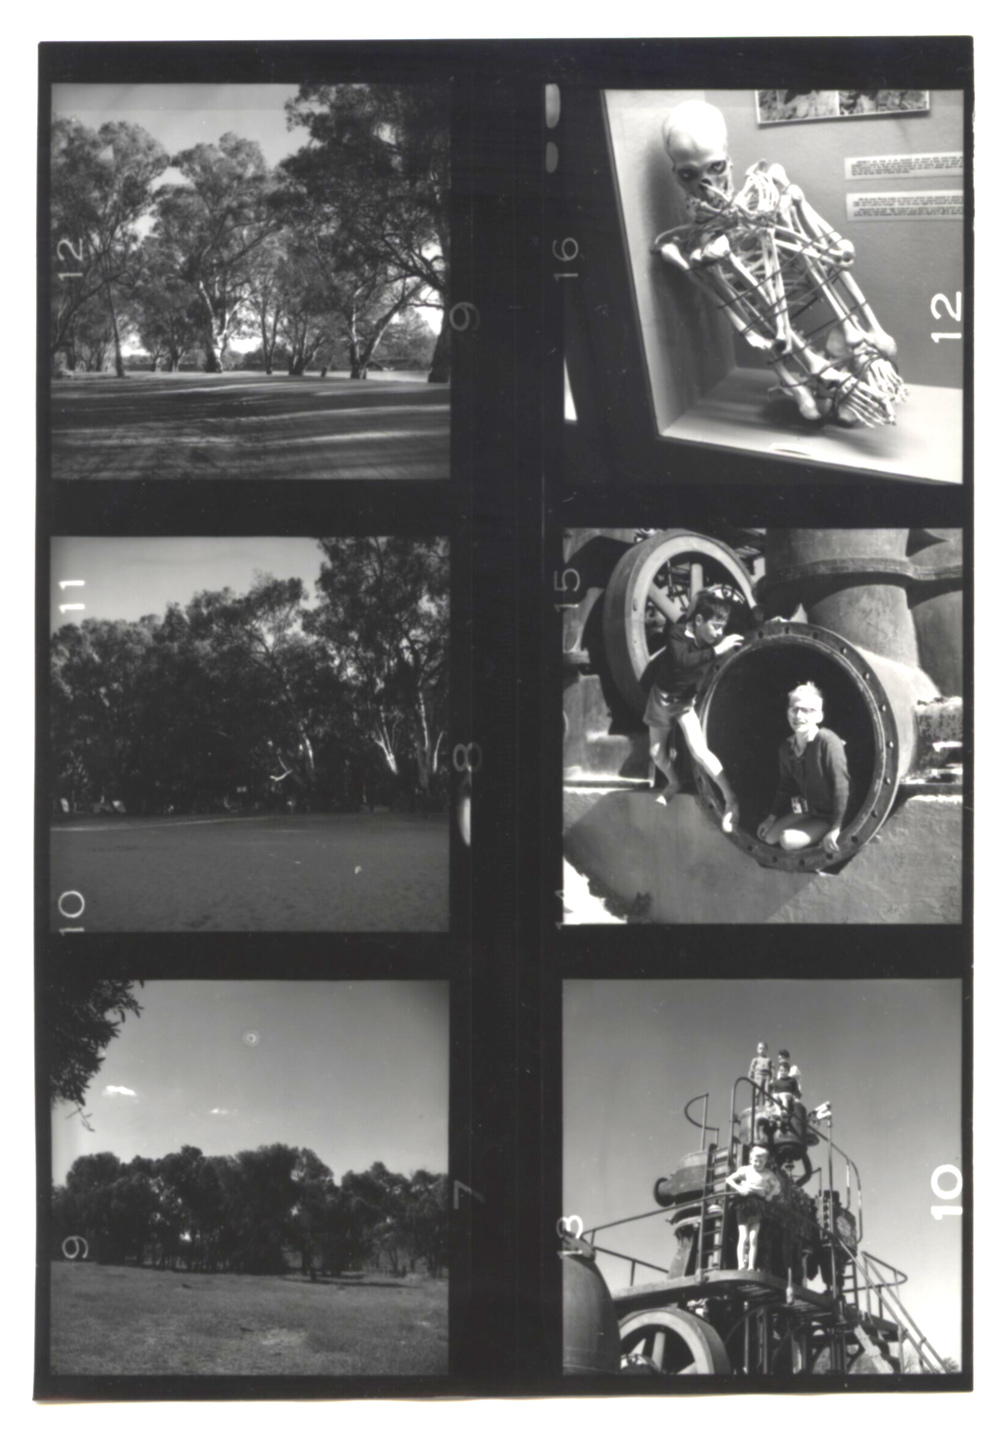 Lin Richardson, [contact sheet, with bound skeleton], c. 1970, digital scan of silver gelatin print in notebook